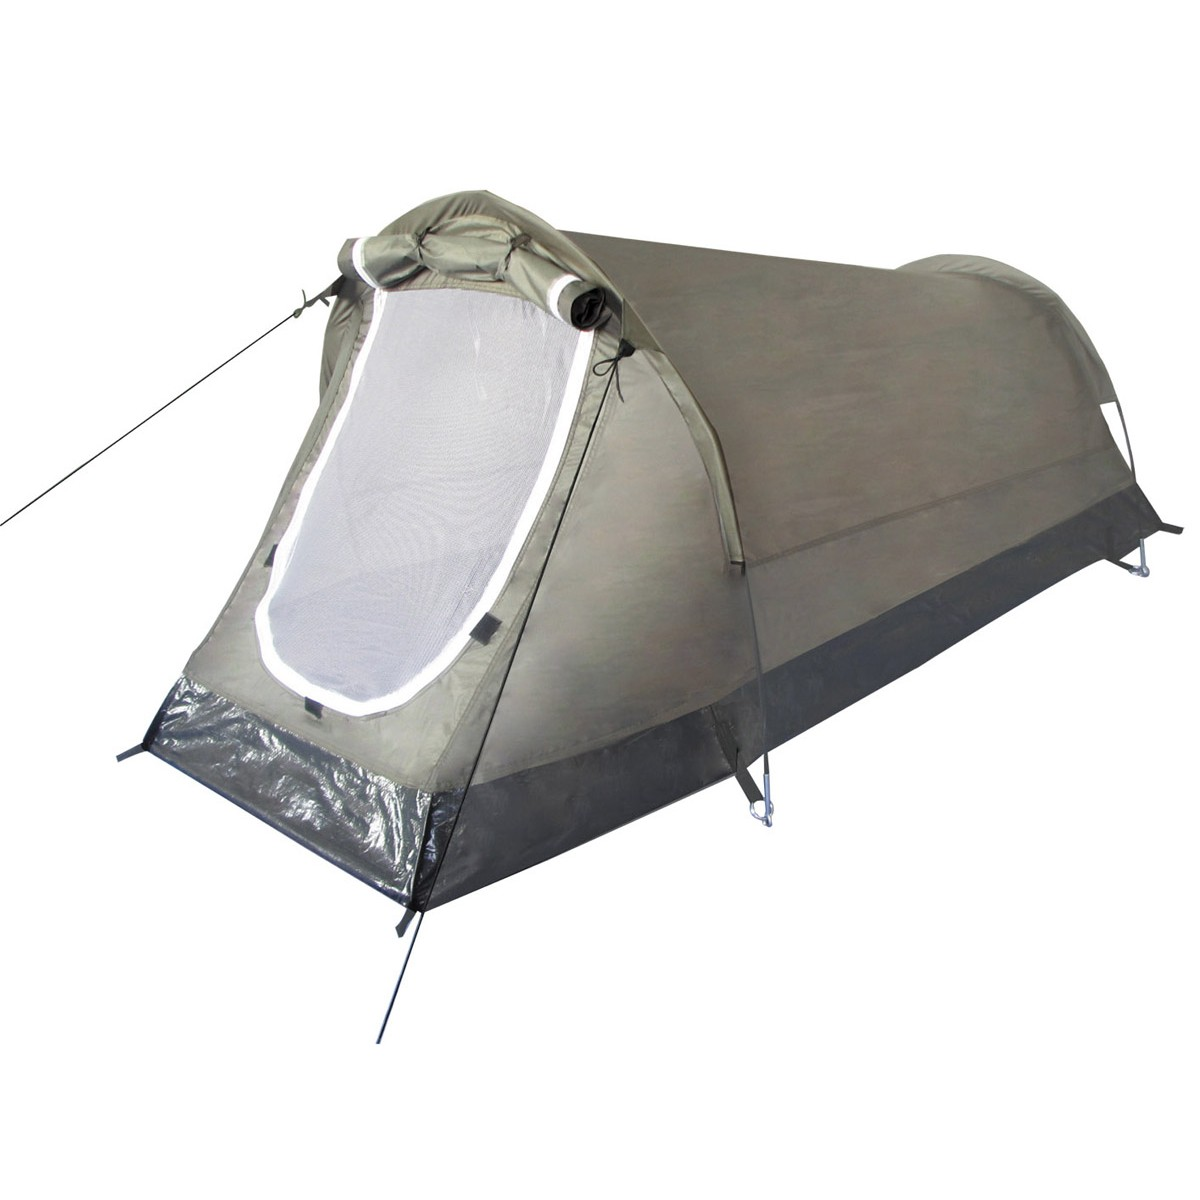 "Tactical Military Hiking Camping Outdoor Tunnel Tent ""Hochstein"" 2 Person Green"